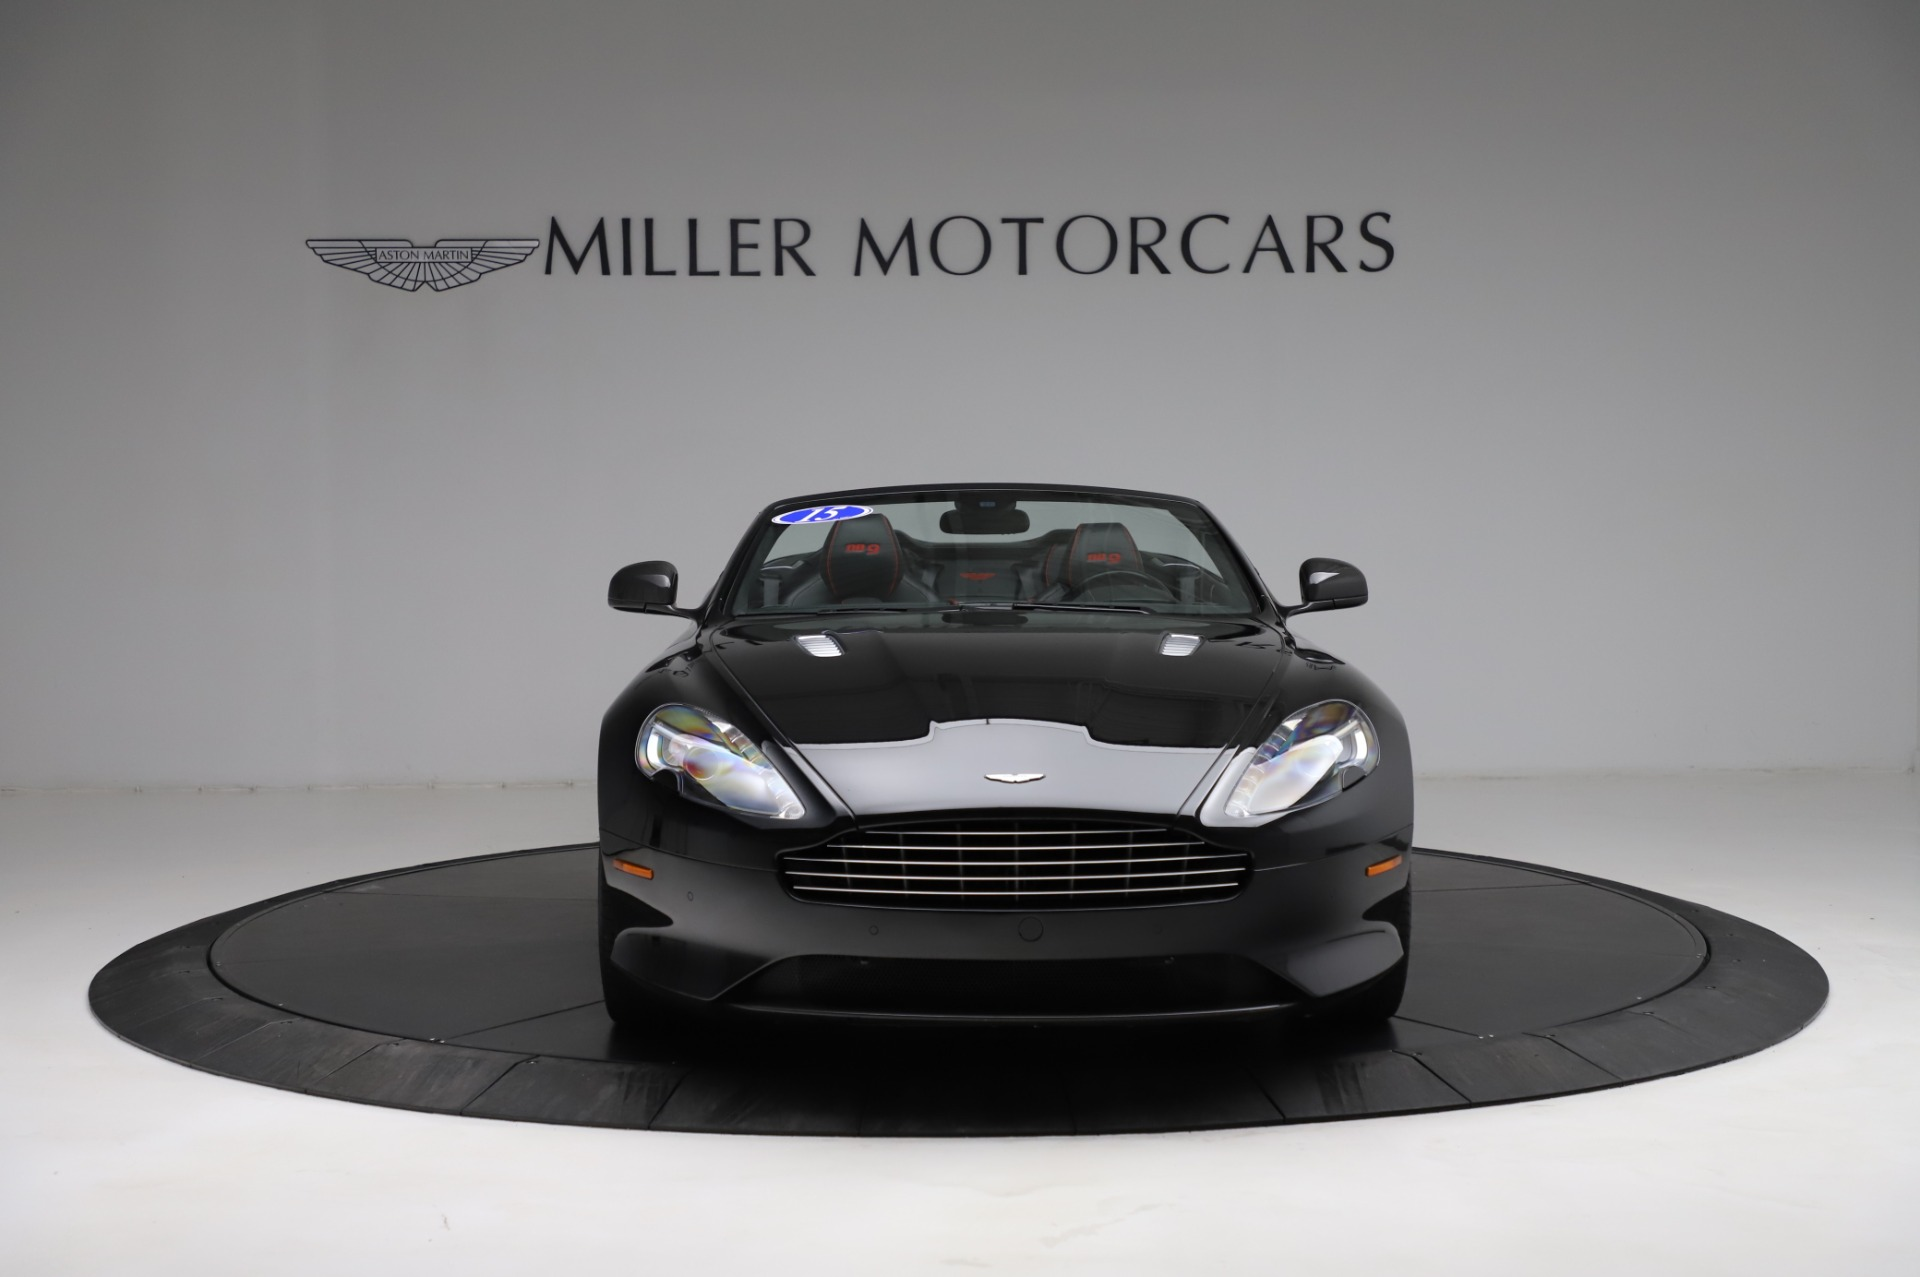 Used 2015 Aston Martin DB9 Convertible For Sale In Westport, CT 1919_p11